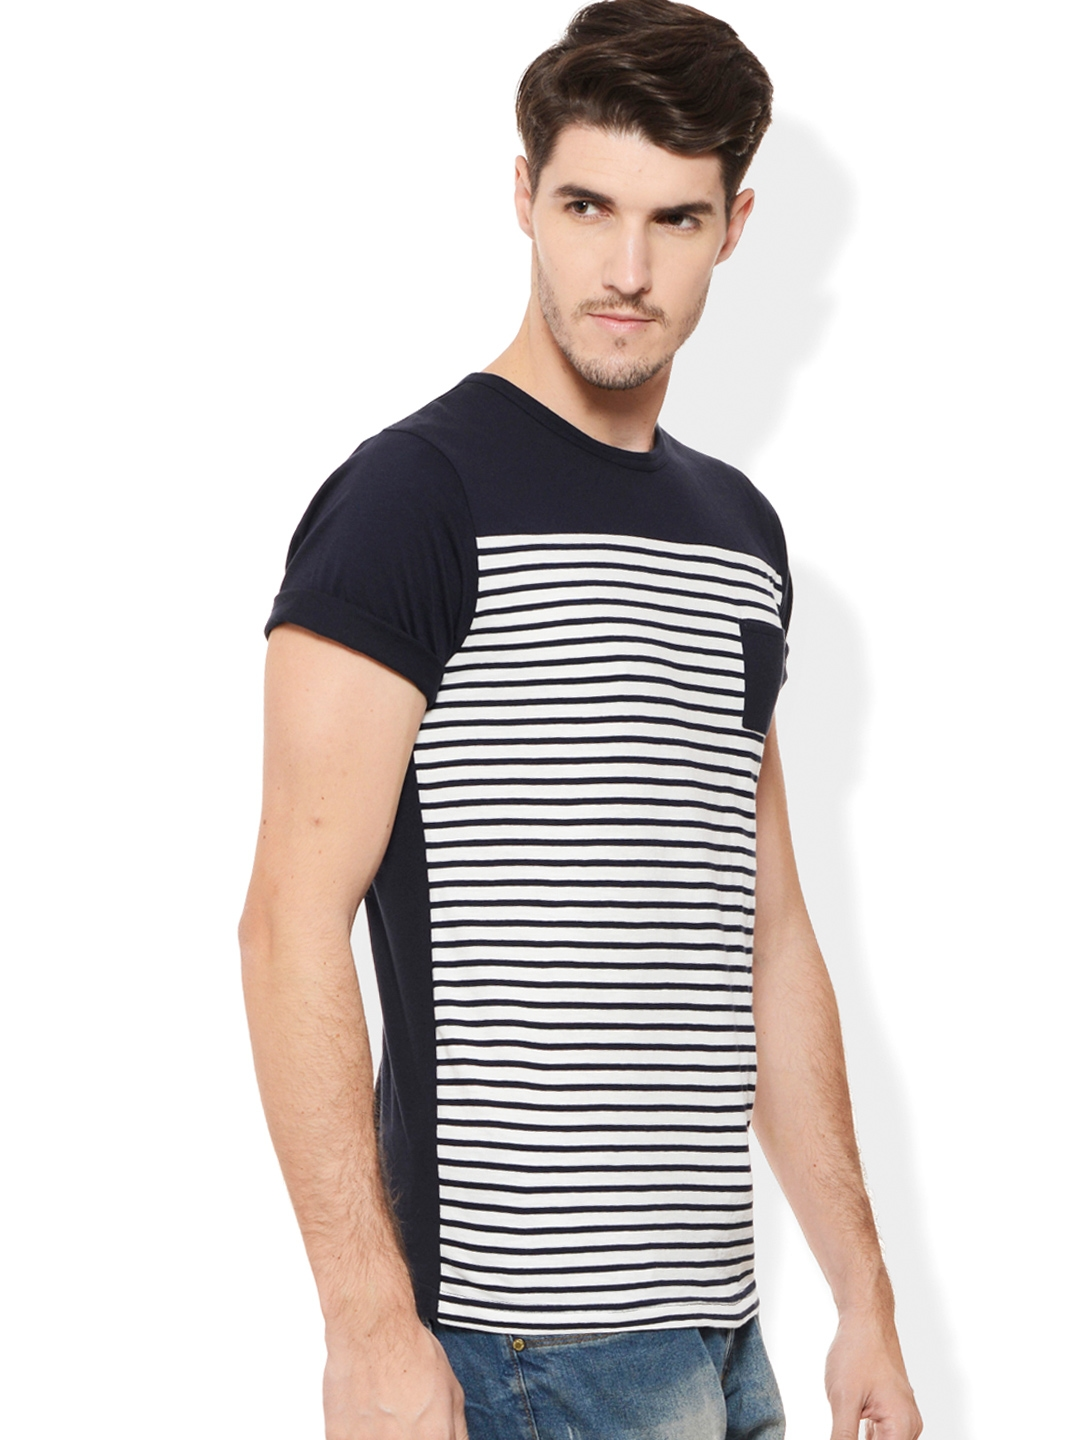 afafdf56b9c Buy Rigo Navy   White Striped Smart Fit T Shirt - Tshirts for Men ...